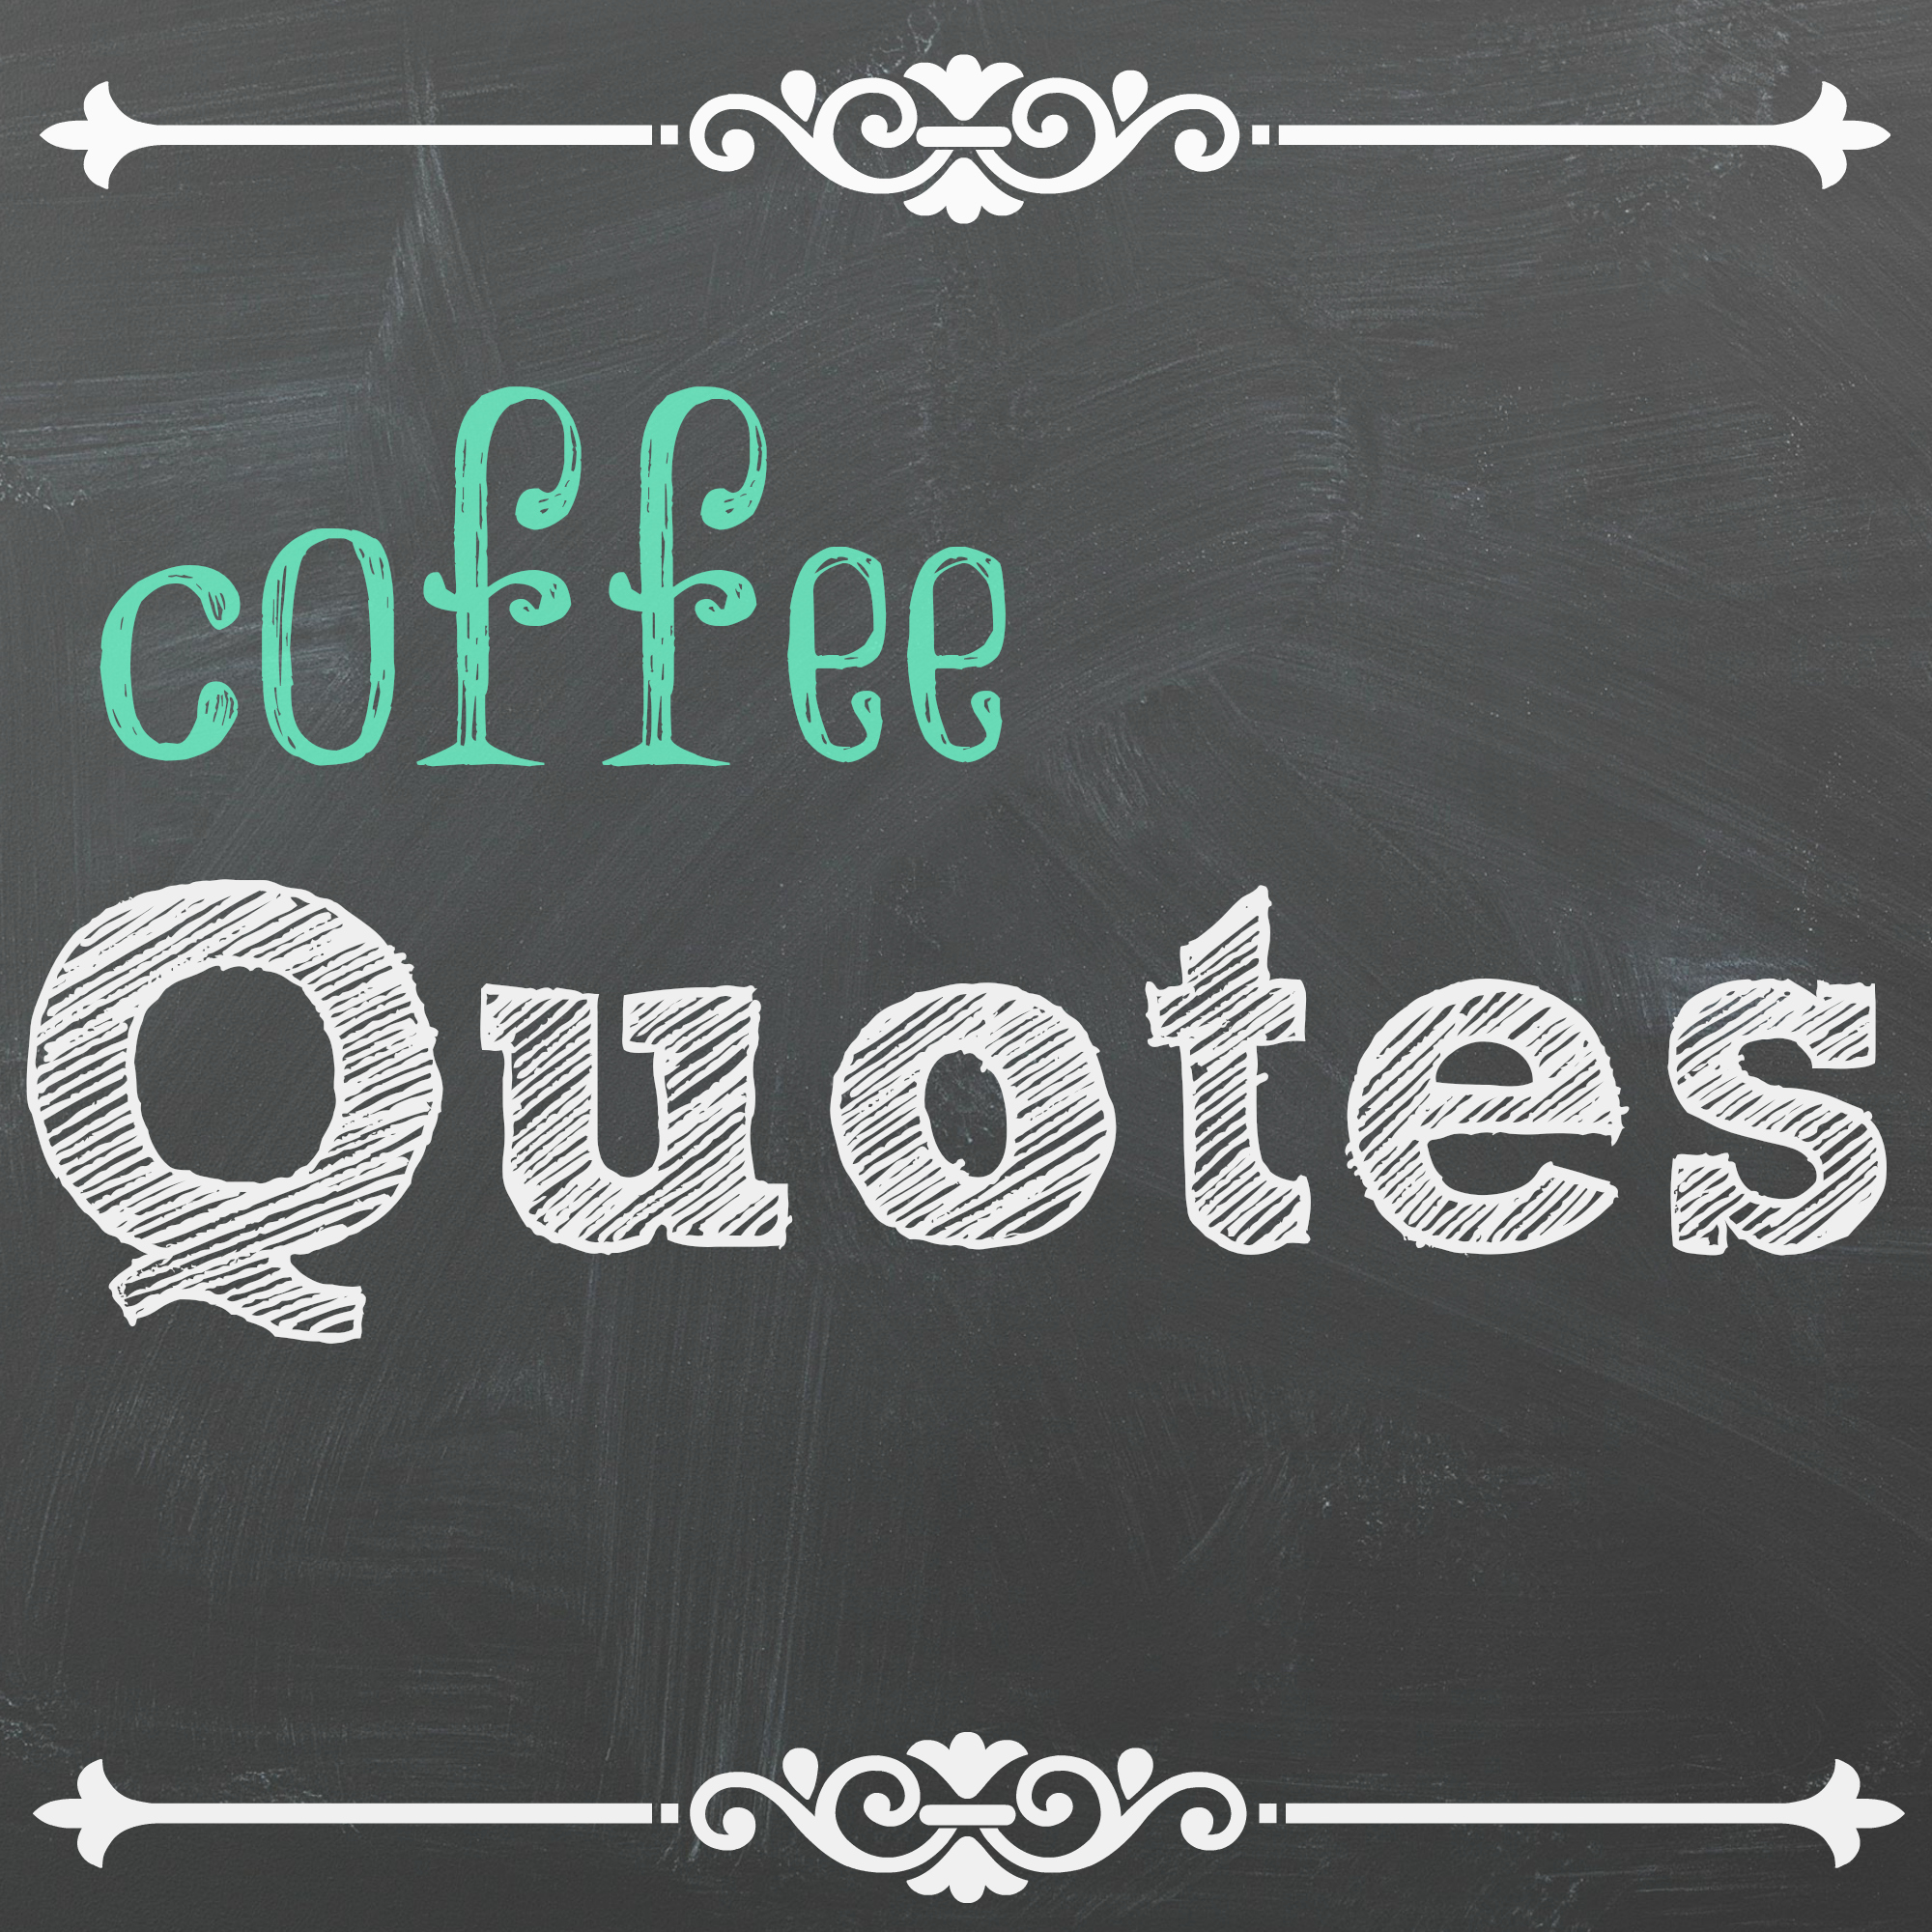 Cafe Quotes And Sayings. QuotesGram